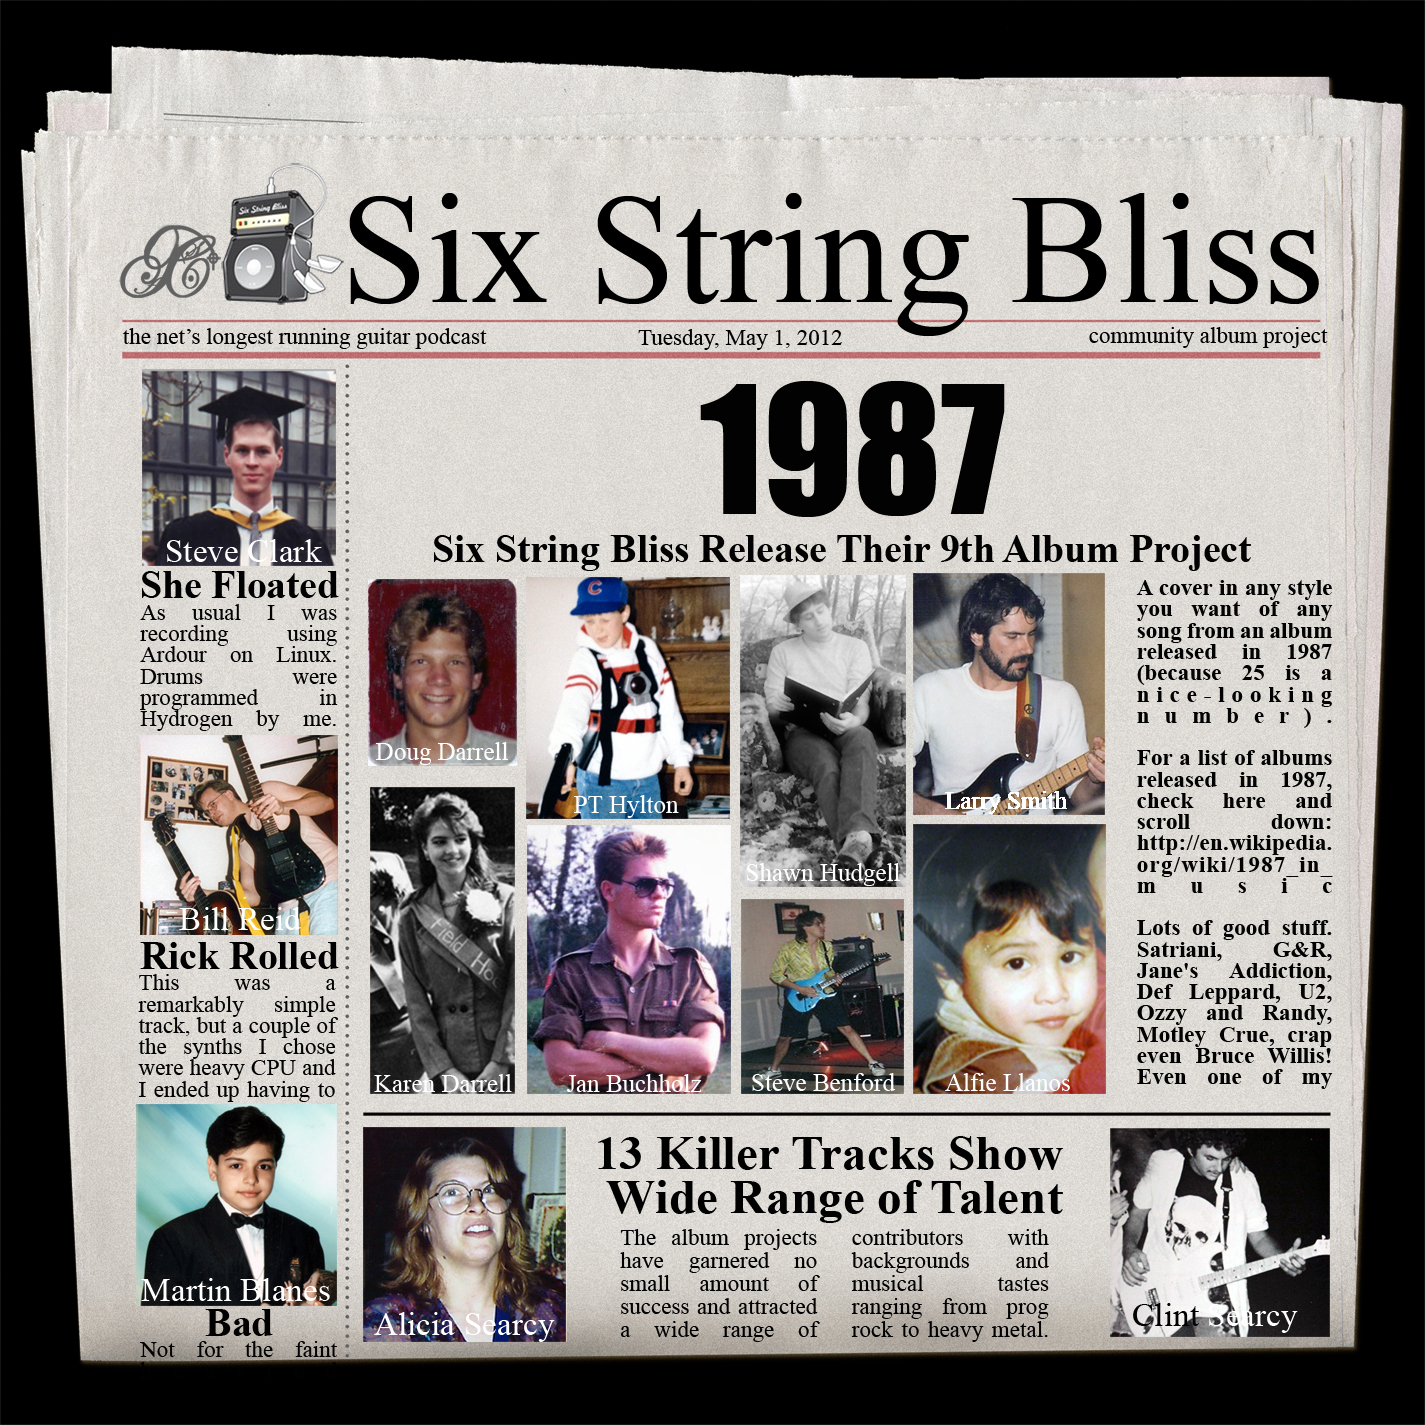 Episode 258: 1987 Album Project